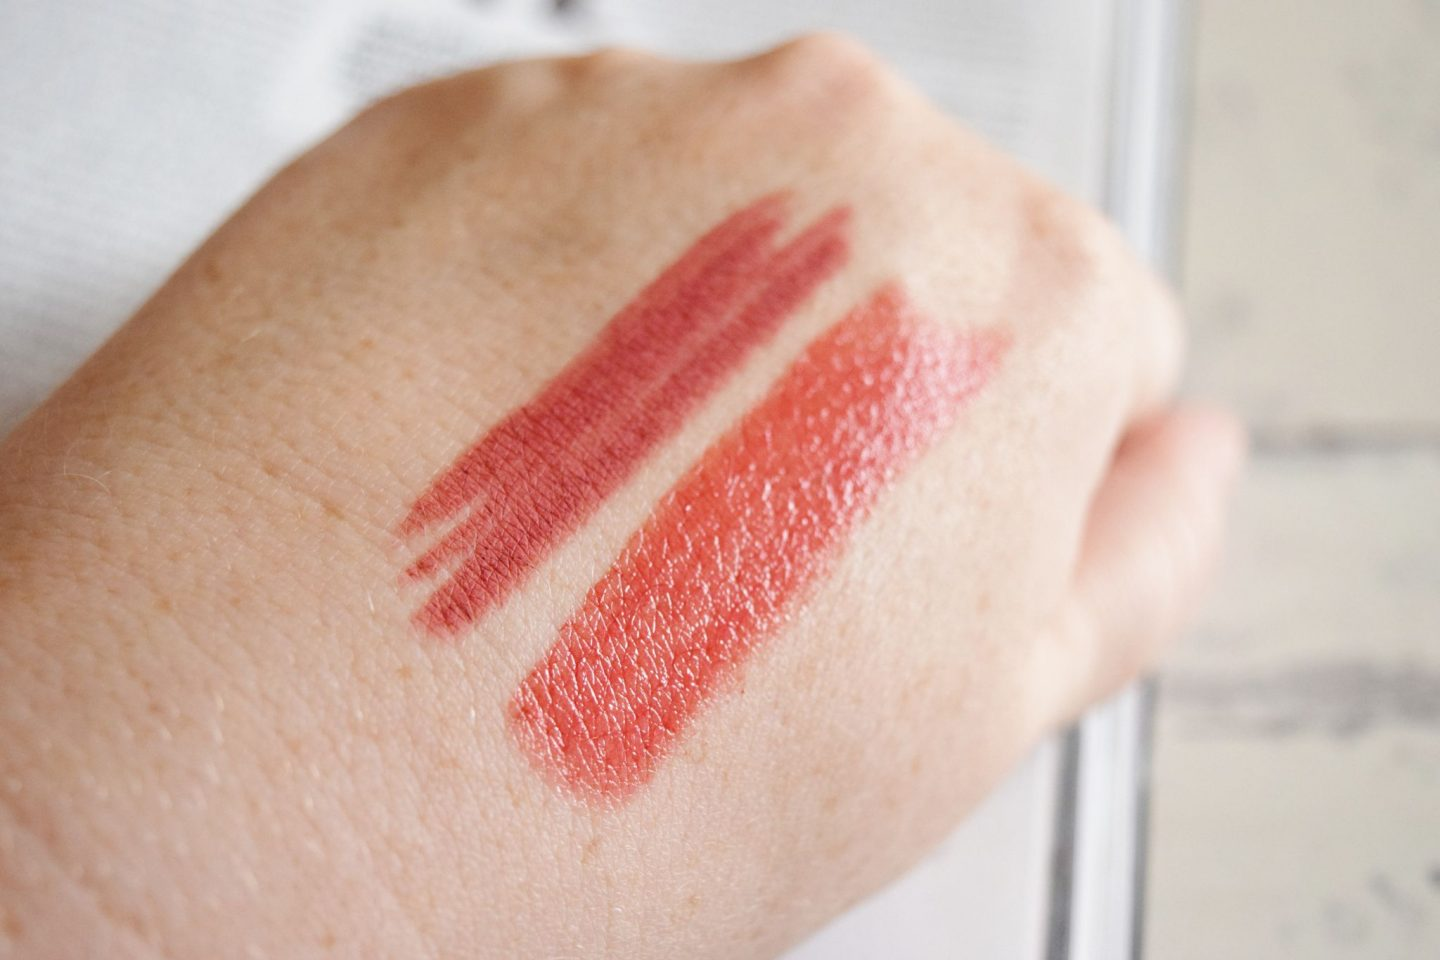 Clarins Autumn 2017 Makeup Collection lip swatches